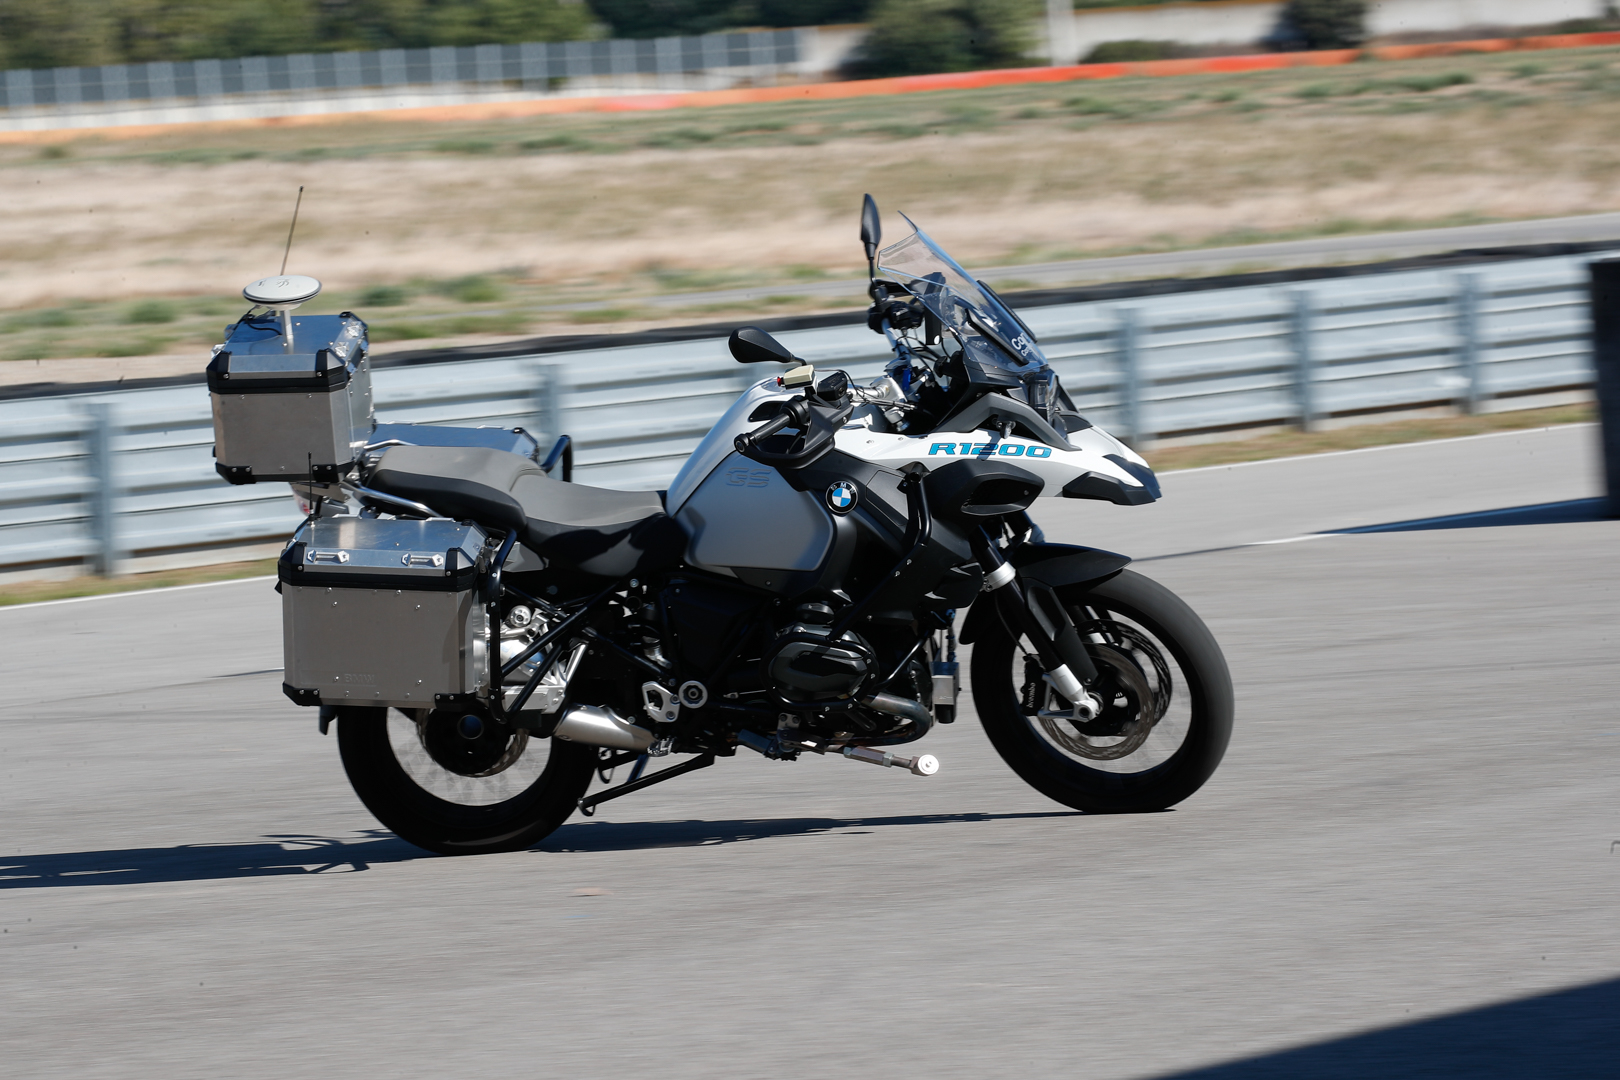 BMW R1200GS: BMW developed the self driving motorcycle